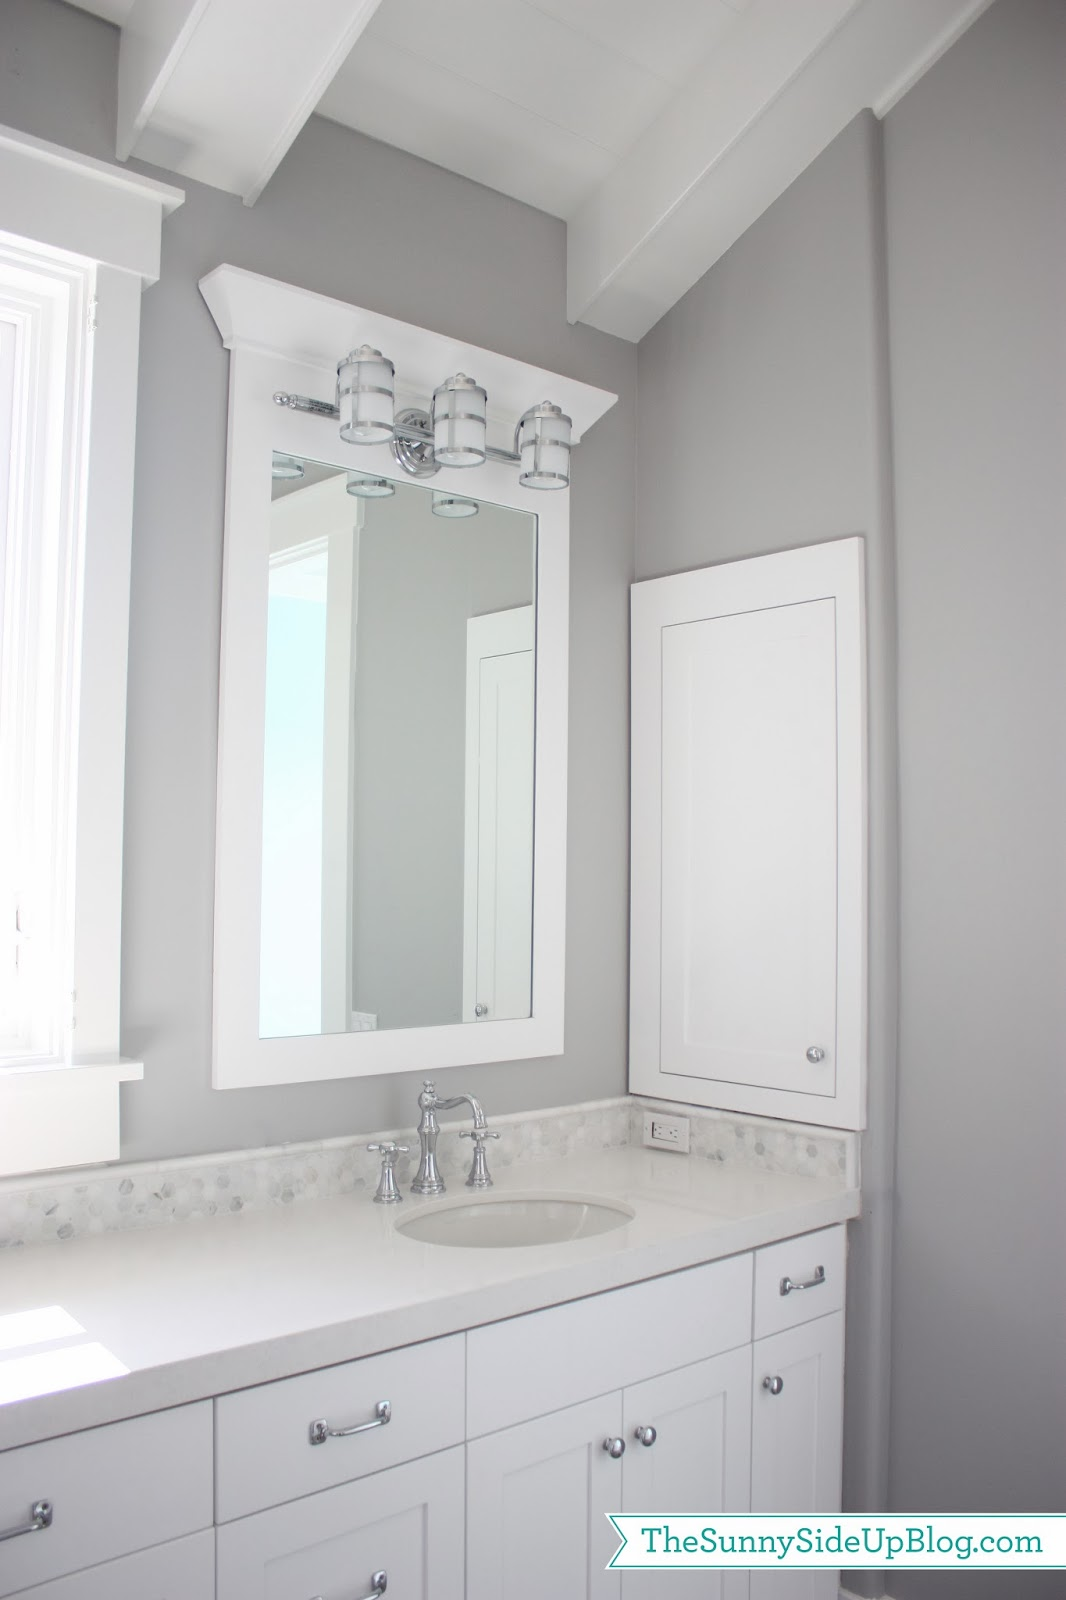 My girls\' new bathroom! - The Sunny Side Up Blog